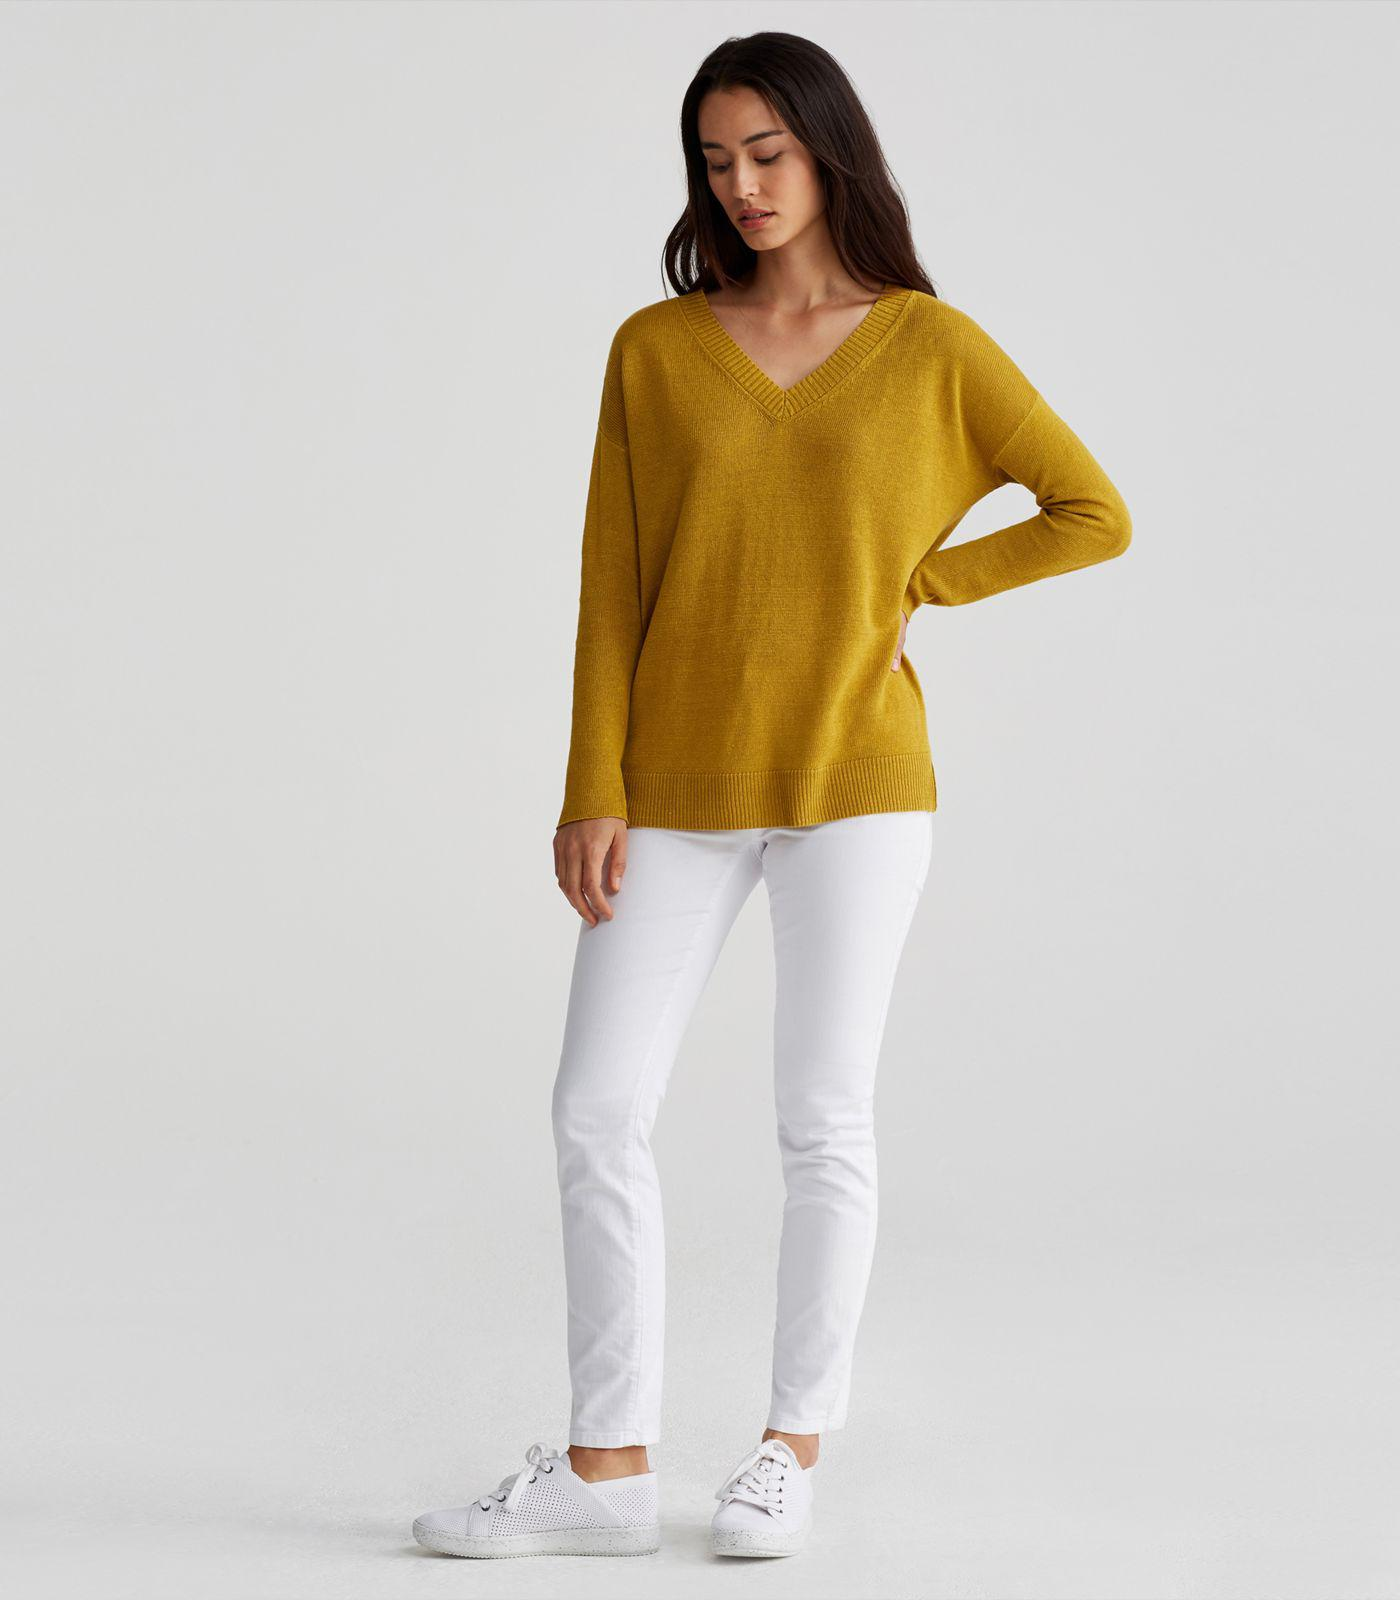 Eileen Fisher Organic Linen Knit V Neck Sweater In Yellow